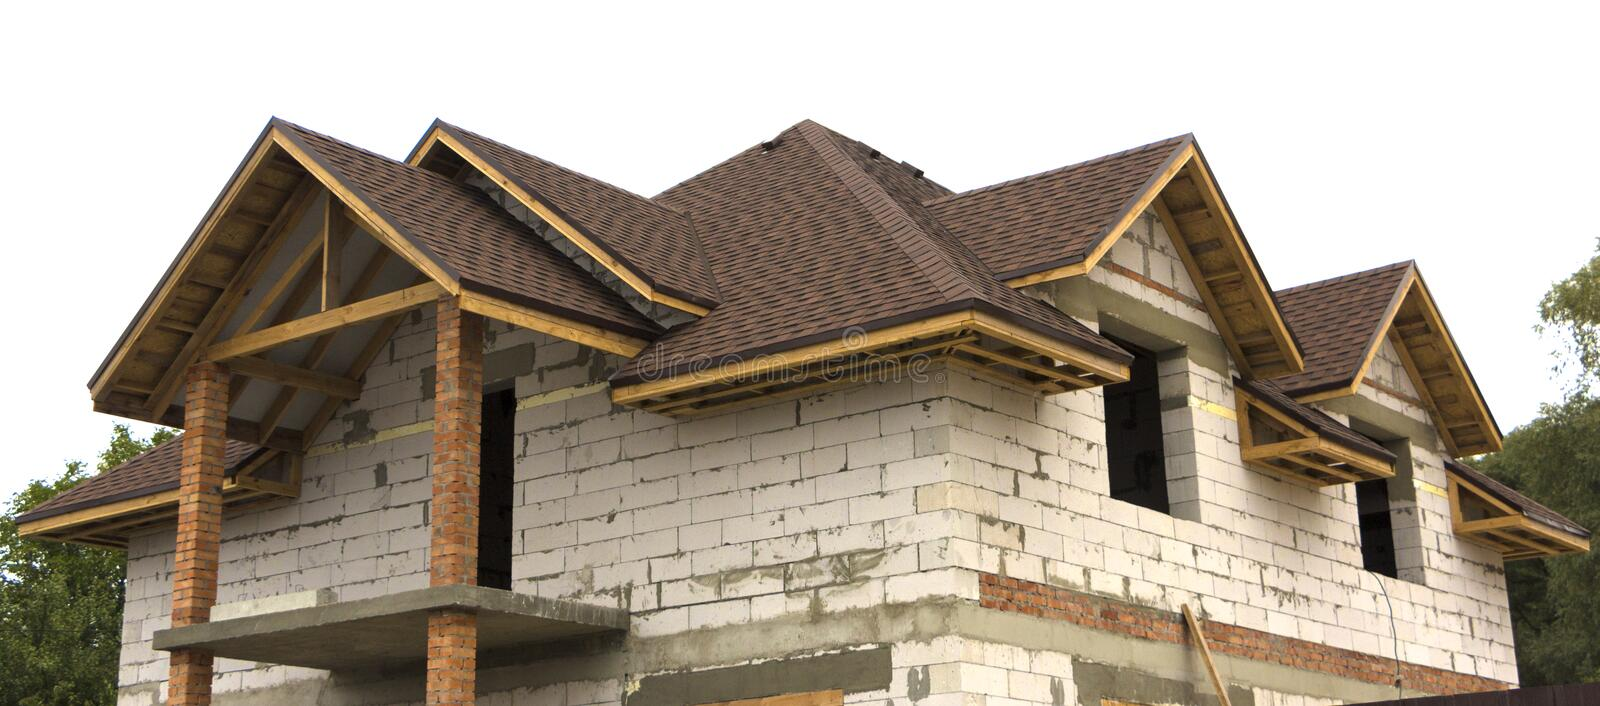 Cottage in the process of construction Wooden arch roof. Roof under construction royalty free stock photography